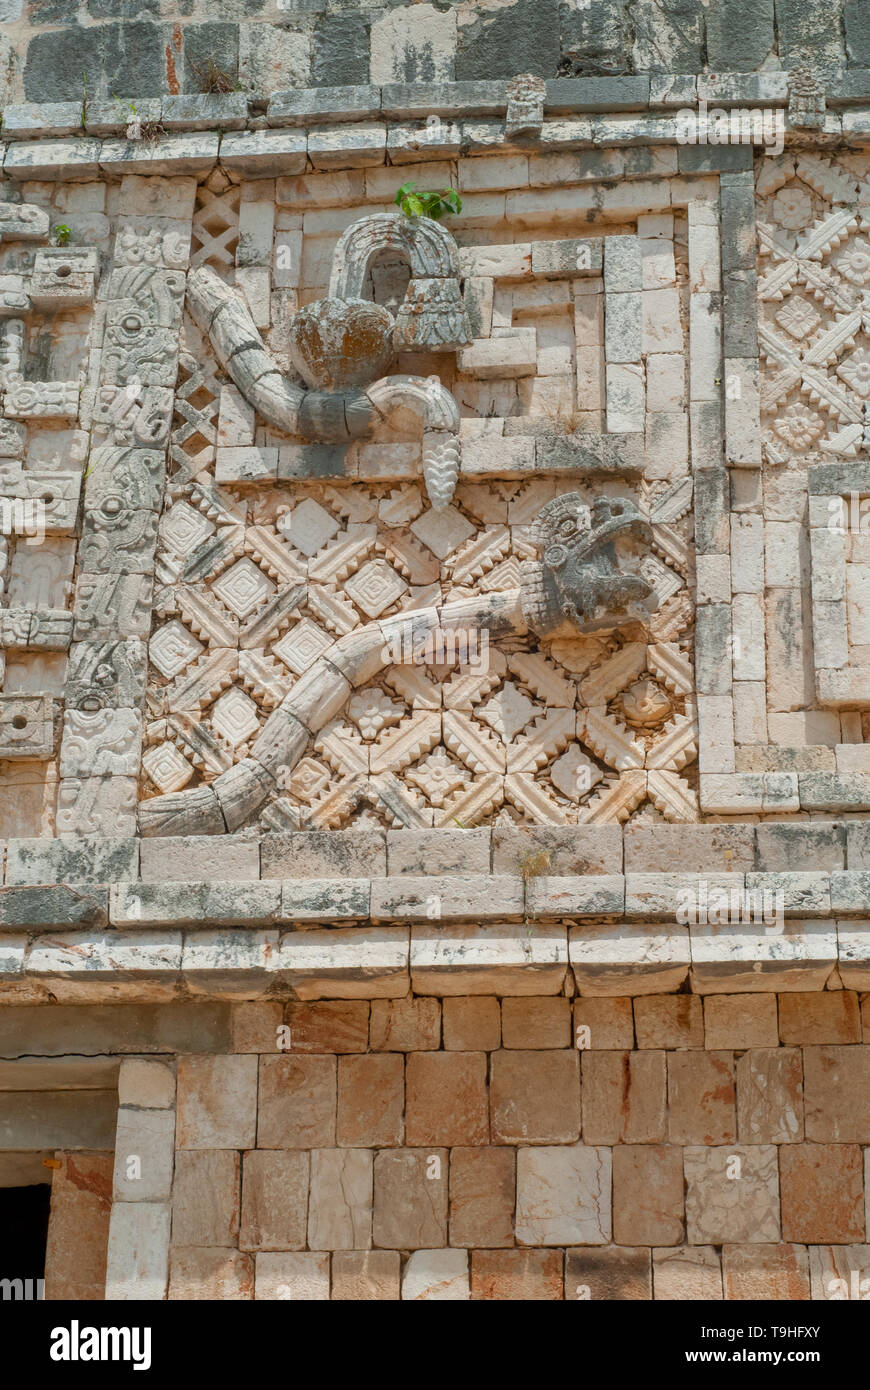 Details of a Mayan decoration, symbolizing a snake, in the archaeological area of Ek Balam, on the Yucatan peninsula - Stock Image